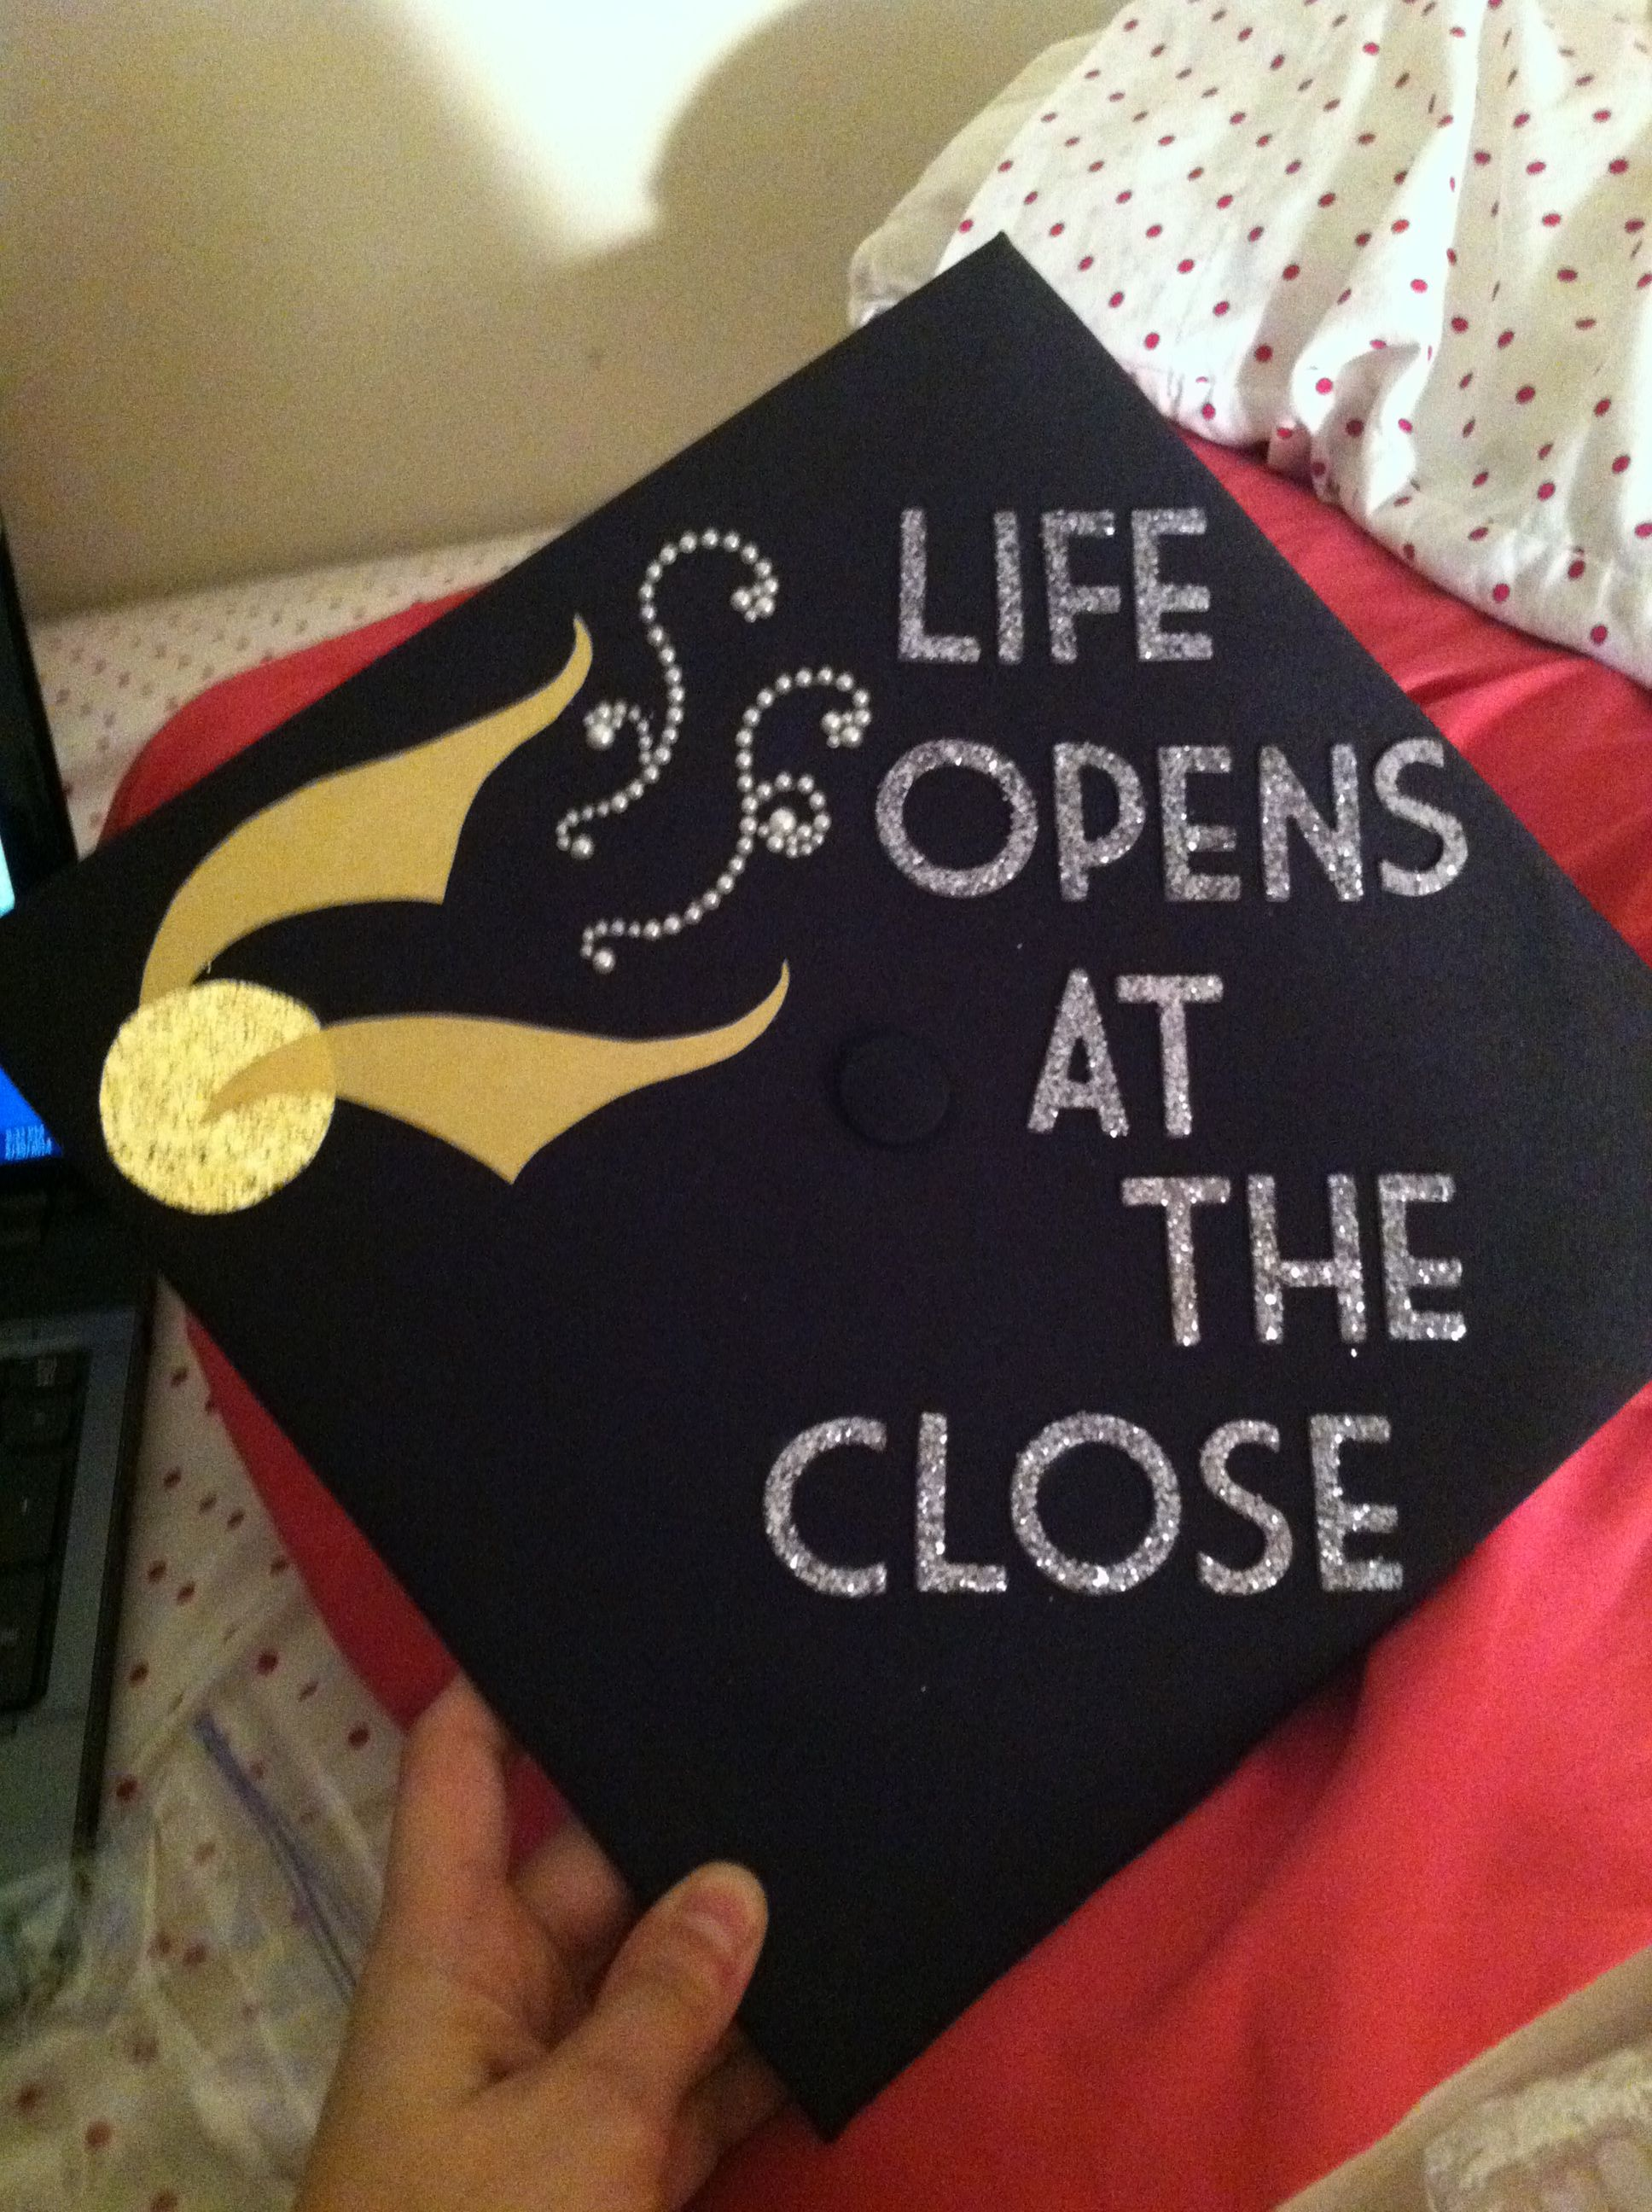 State Opens At Diy Graduation Life Opens At Diy Graduation Cap Graduation Pinterest Graduation Cap Quotes Graduation Cap Quotes Moms